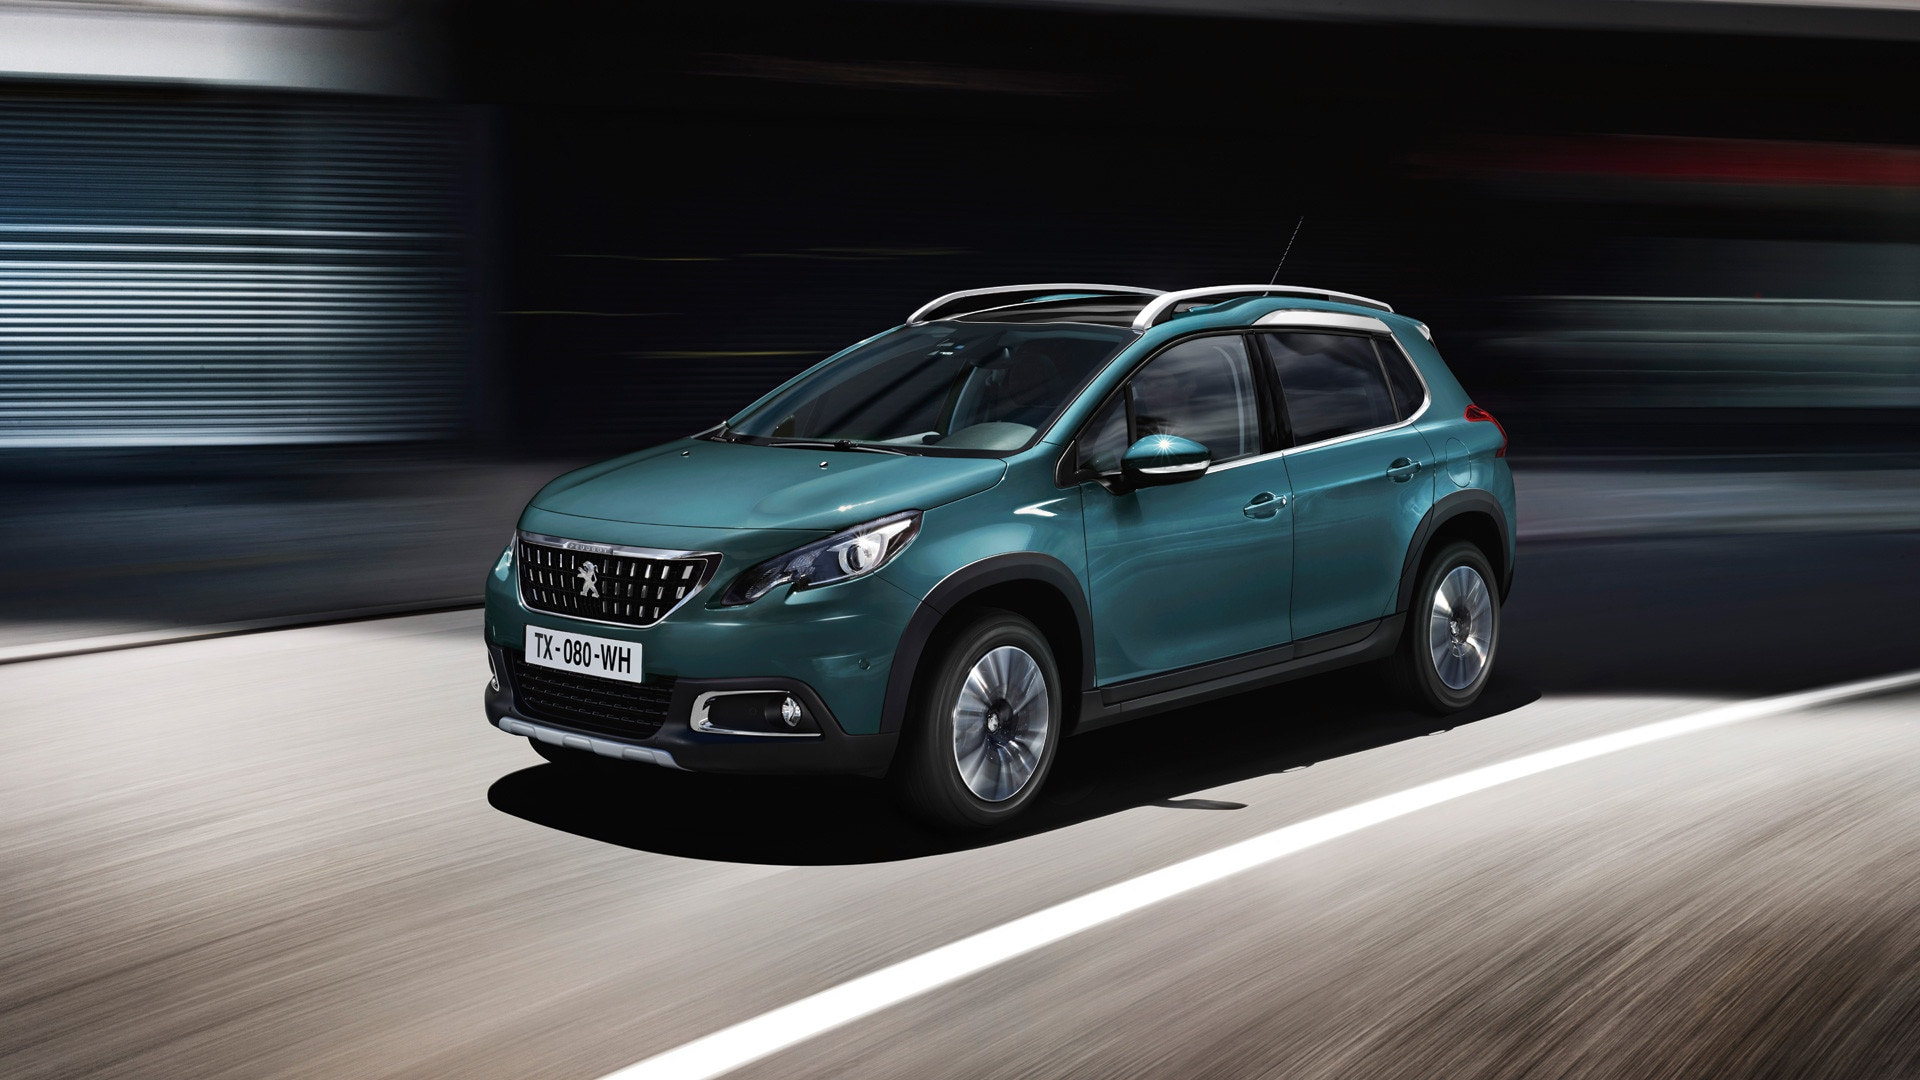 peugeot 2008 new car showroom suv test drive today. Black Bedroom Furniture Sets. Home Design Ideas